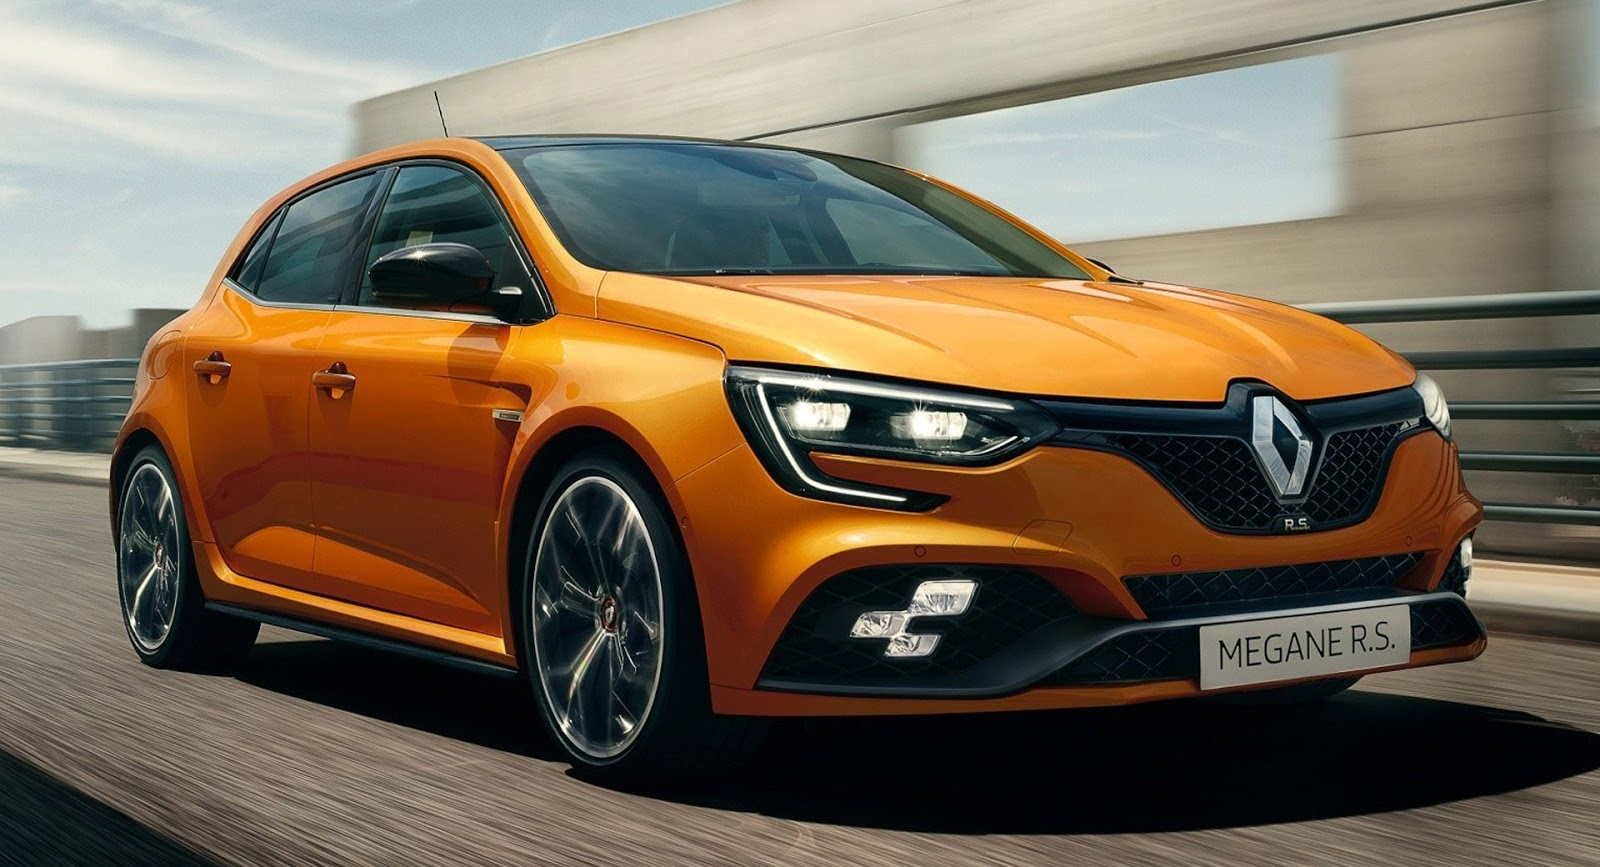 new renault megane rs delivers 5 8 sec 0 62 time from 37 600. Black Bedroom Furniture Sets. Home Design Ideas